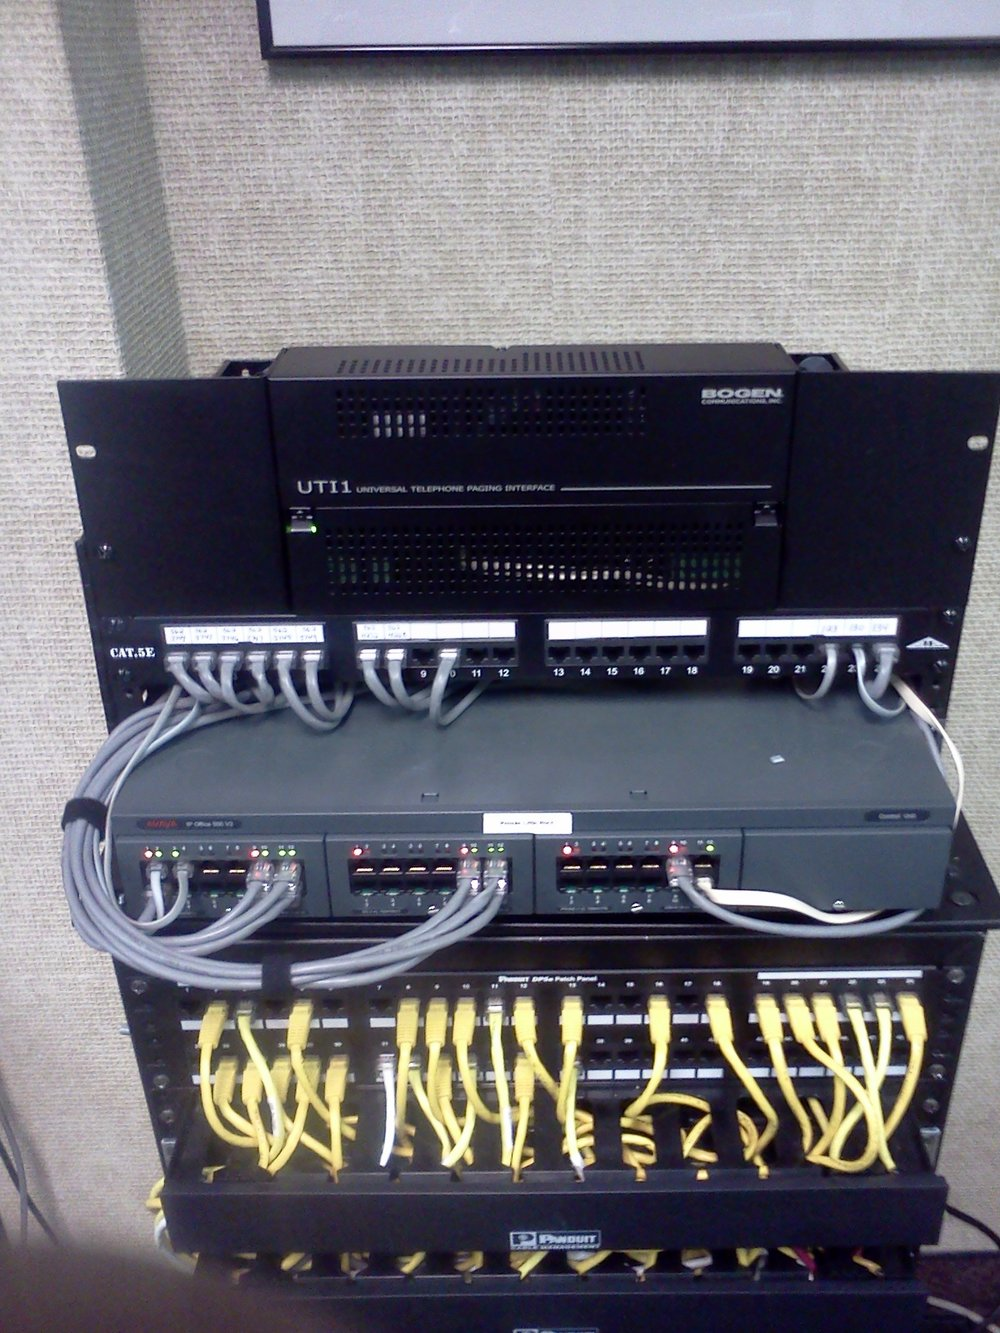 New Avaya IPO in Rack.jpg